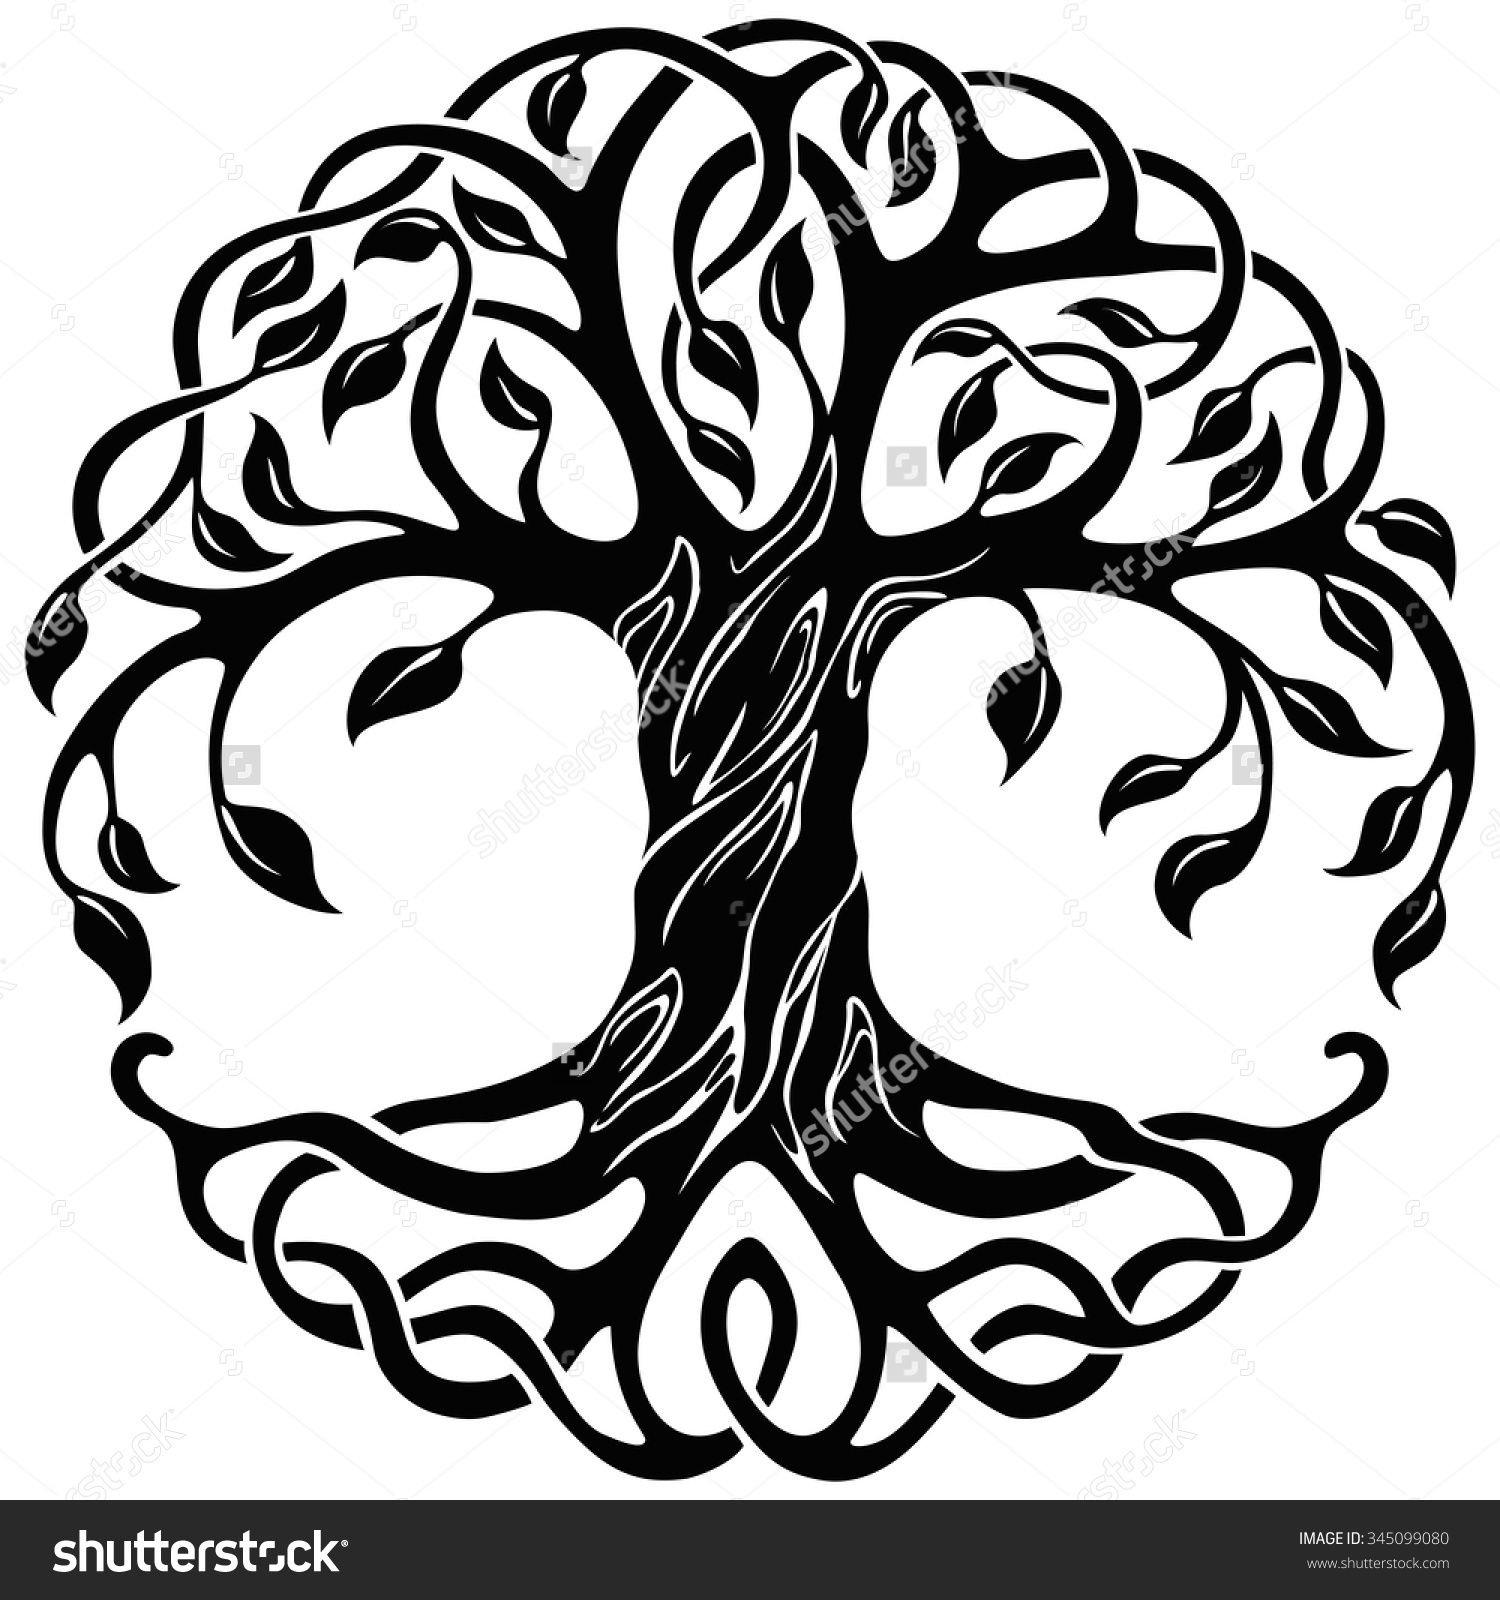 Celtic Tree Of Life Stock Photos, Images, & Pictures.